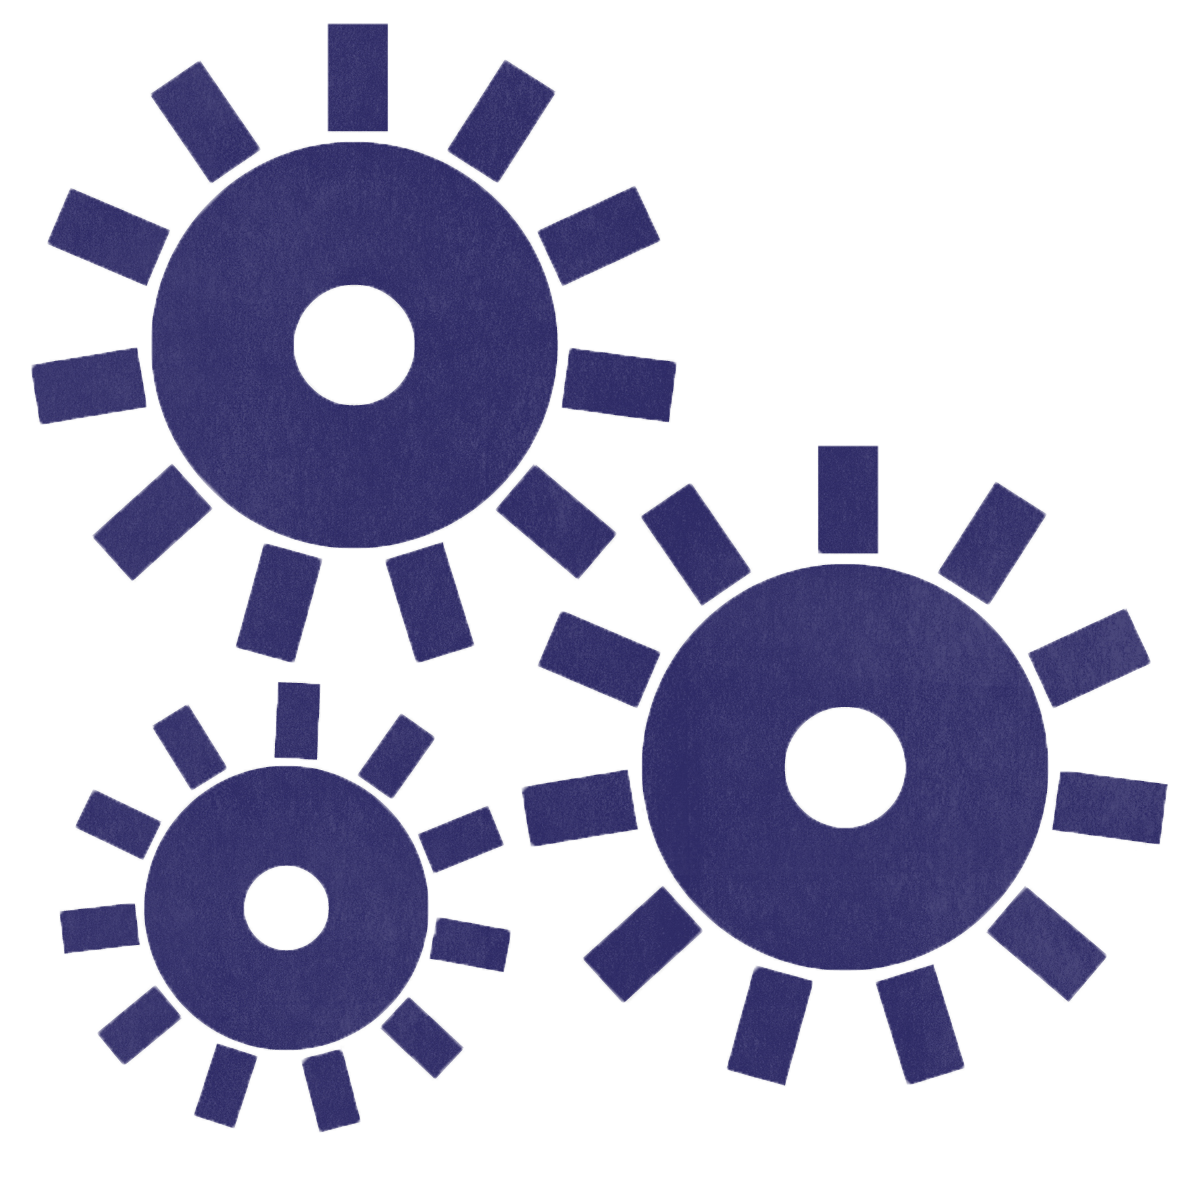 Three purple gears showing innovation as a core value.